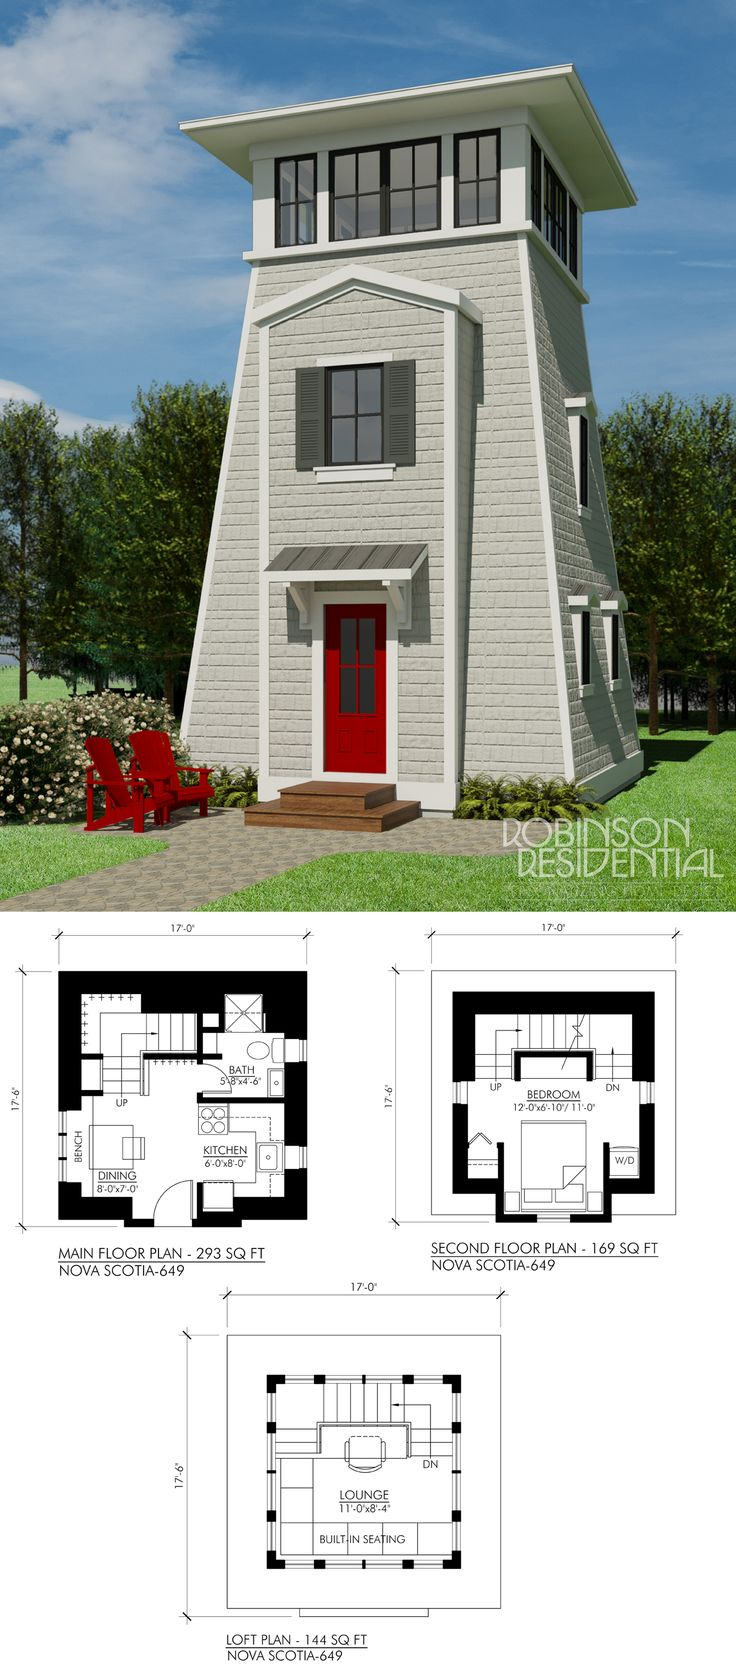 Best 25 small homes ideas on pinterest small home plans for Small home house plans